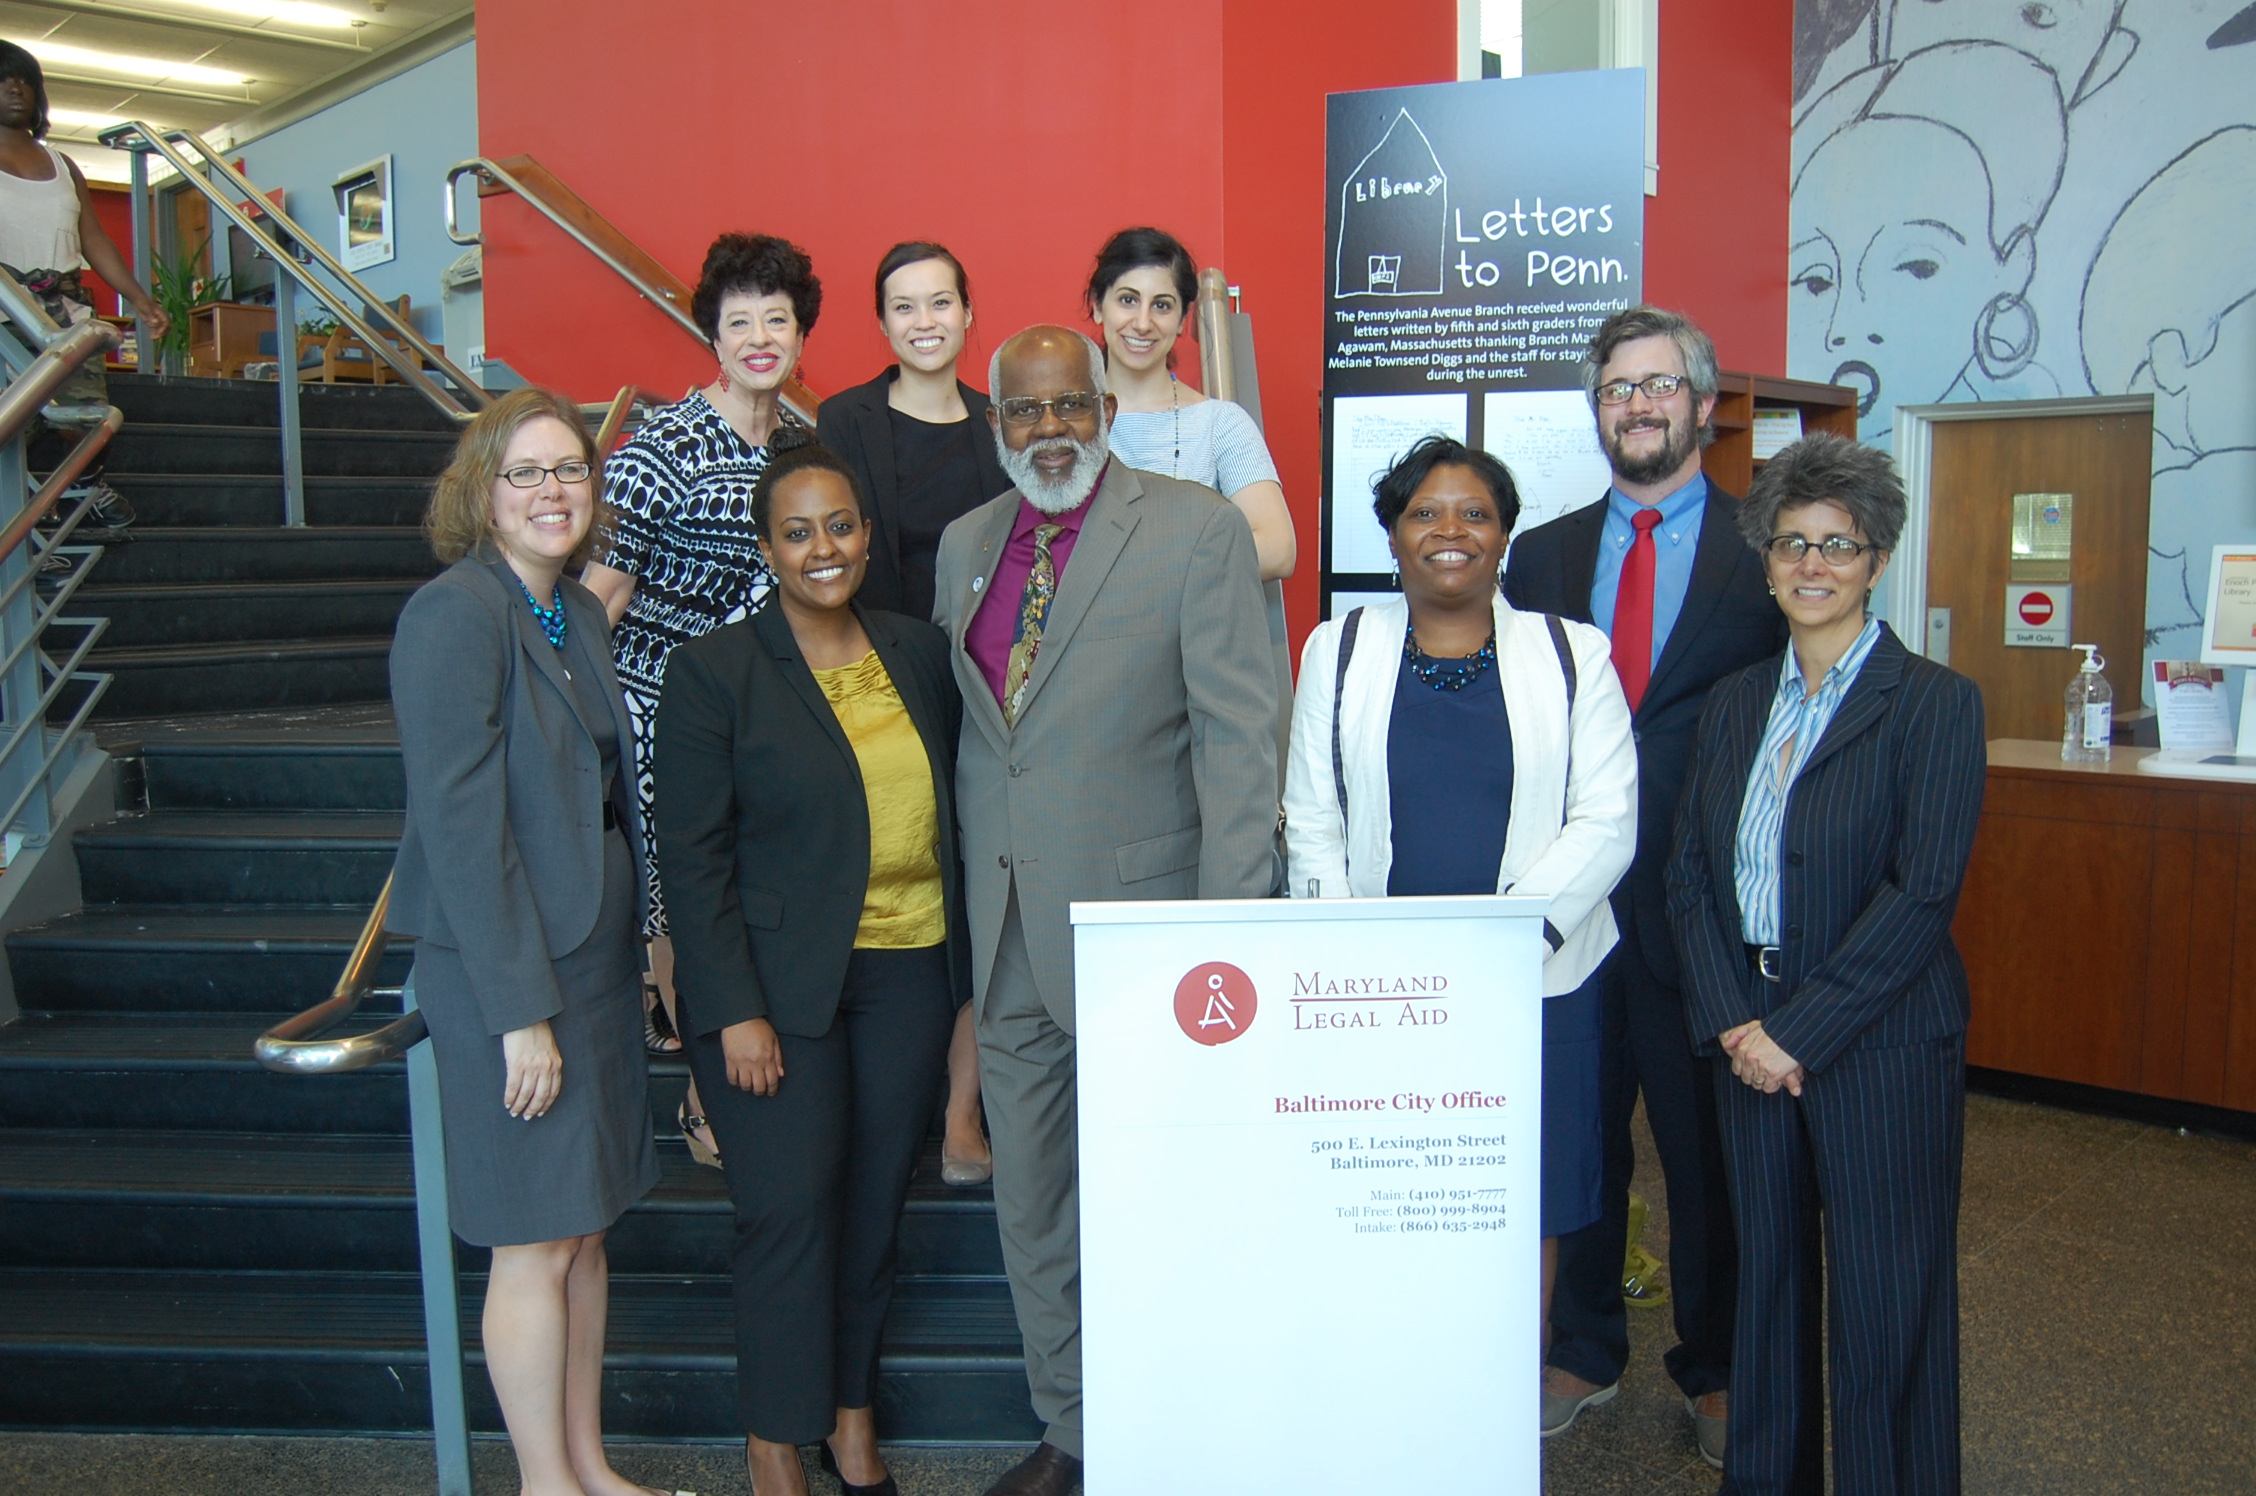 Members of the Office for Access to Justice at the Enoch Pratt Free Library